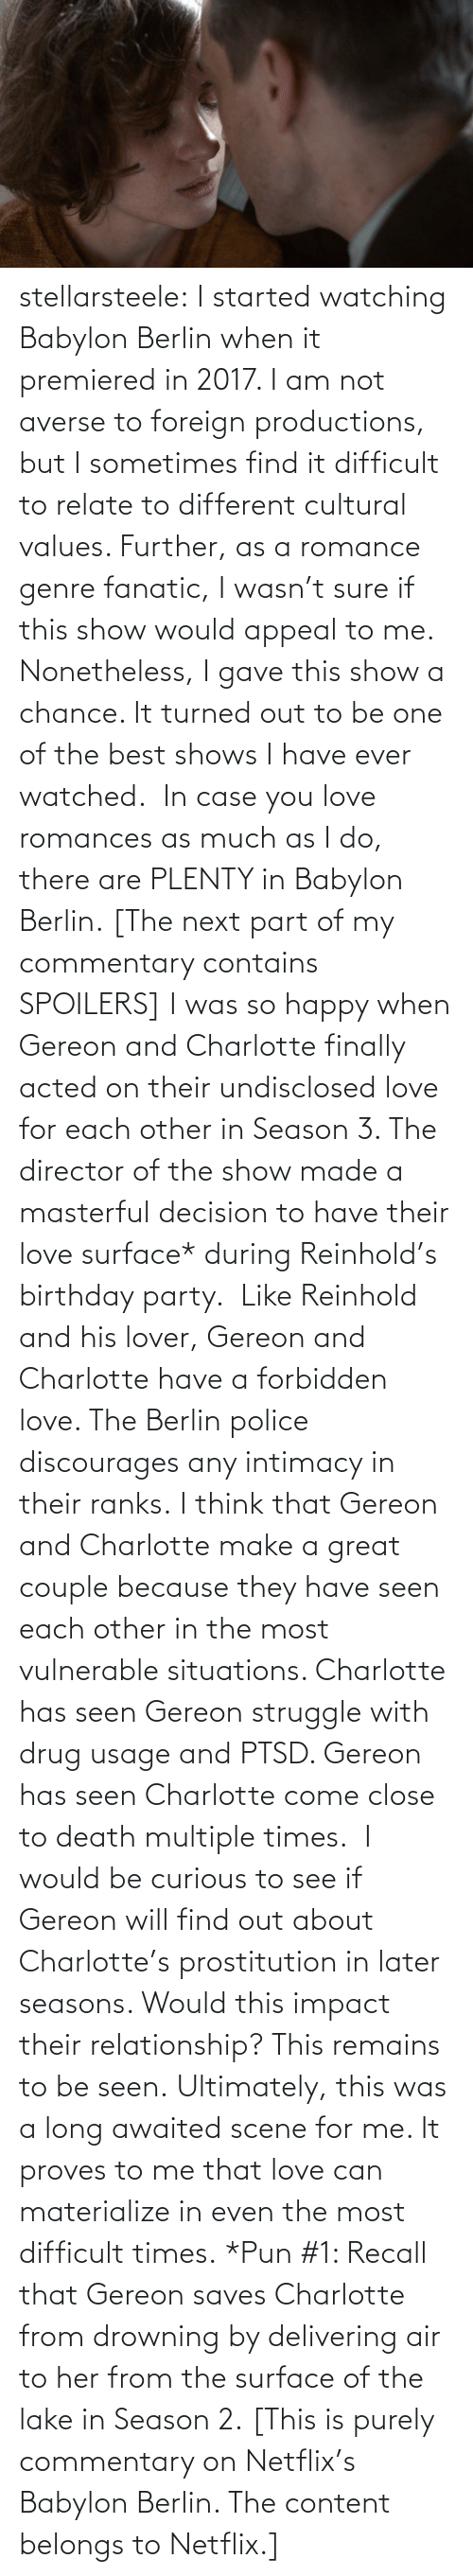 relationship: stellarsteele: I started watching Babylon Berlin when it premiered in 2017. I am not averse to foreign productions, but I sometimes find it difficult to relate to different cultural values. Further, as a romance genre fanatic, I wasn't sure if this show would appeal to me.  Nonetheless, I gave this show a chance. It turned out to be one of the best shows I have ever watched.  In case you love romances as much as I do, there are PLENTY in Babylon Berlin. [The next part of my commentary contains SPOILERS] I was so happy when Gereon and Charlotte finally acted on their undisclosed love for each other in Season 3. The director of the show made a masterful decision to have their love surface* during Reinhold's birthday party.  Like Reinhold and his lover, Gereon and Charlotte have a forbidden love. The Berlin police discourages any intimacy in their ranks. I think that Gereon and Charlotte make a great couple because they have seen each other in the most vulnerable situations. Charlotte has seen Gereon struggle with drug usage and PTSD. Gereon has seen Charlotte come close to death multiple times.  I would be curious to see if Gereon will find out about Charlotte's prostitution in later seasons. Would this impact their relationship? This remains to be seen. Ultimately, this was a long awaited scene for me. It proves to me that love can materialize in even the most difficult times. *Pun #1: Recall that Gereon saves Charlotte from drowning by delivering air to her from the surface of the lake in Season 2. [This is purely commentary on Netflix's Babylon Berlin. The content belongs to Netflix.]